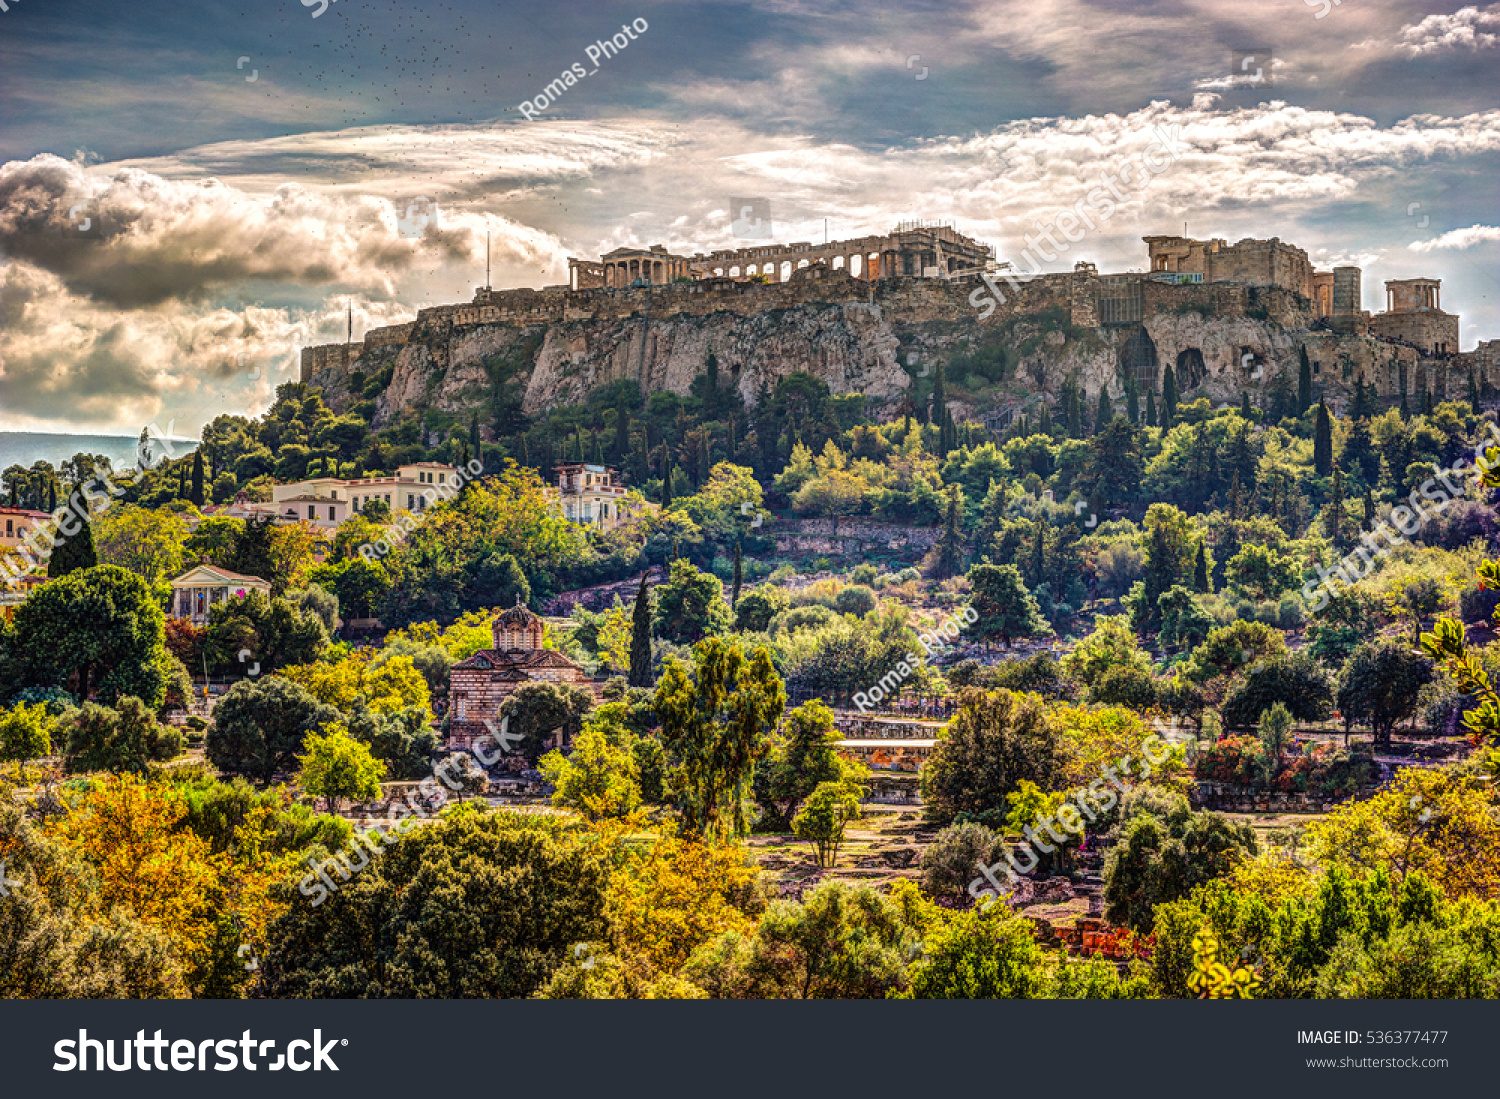 Shilpa Ahuja (The mystique of ruins! #ancient #athens # ...  |Athens Greece Photography